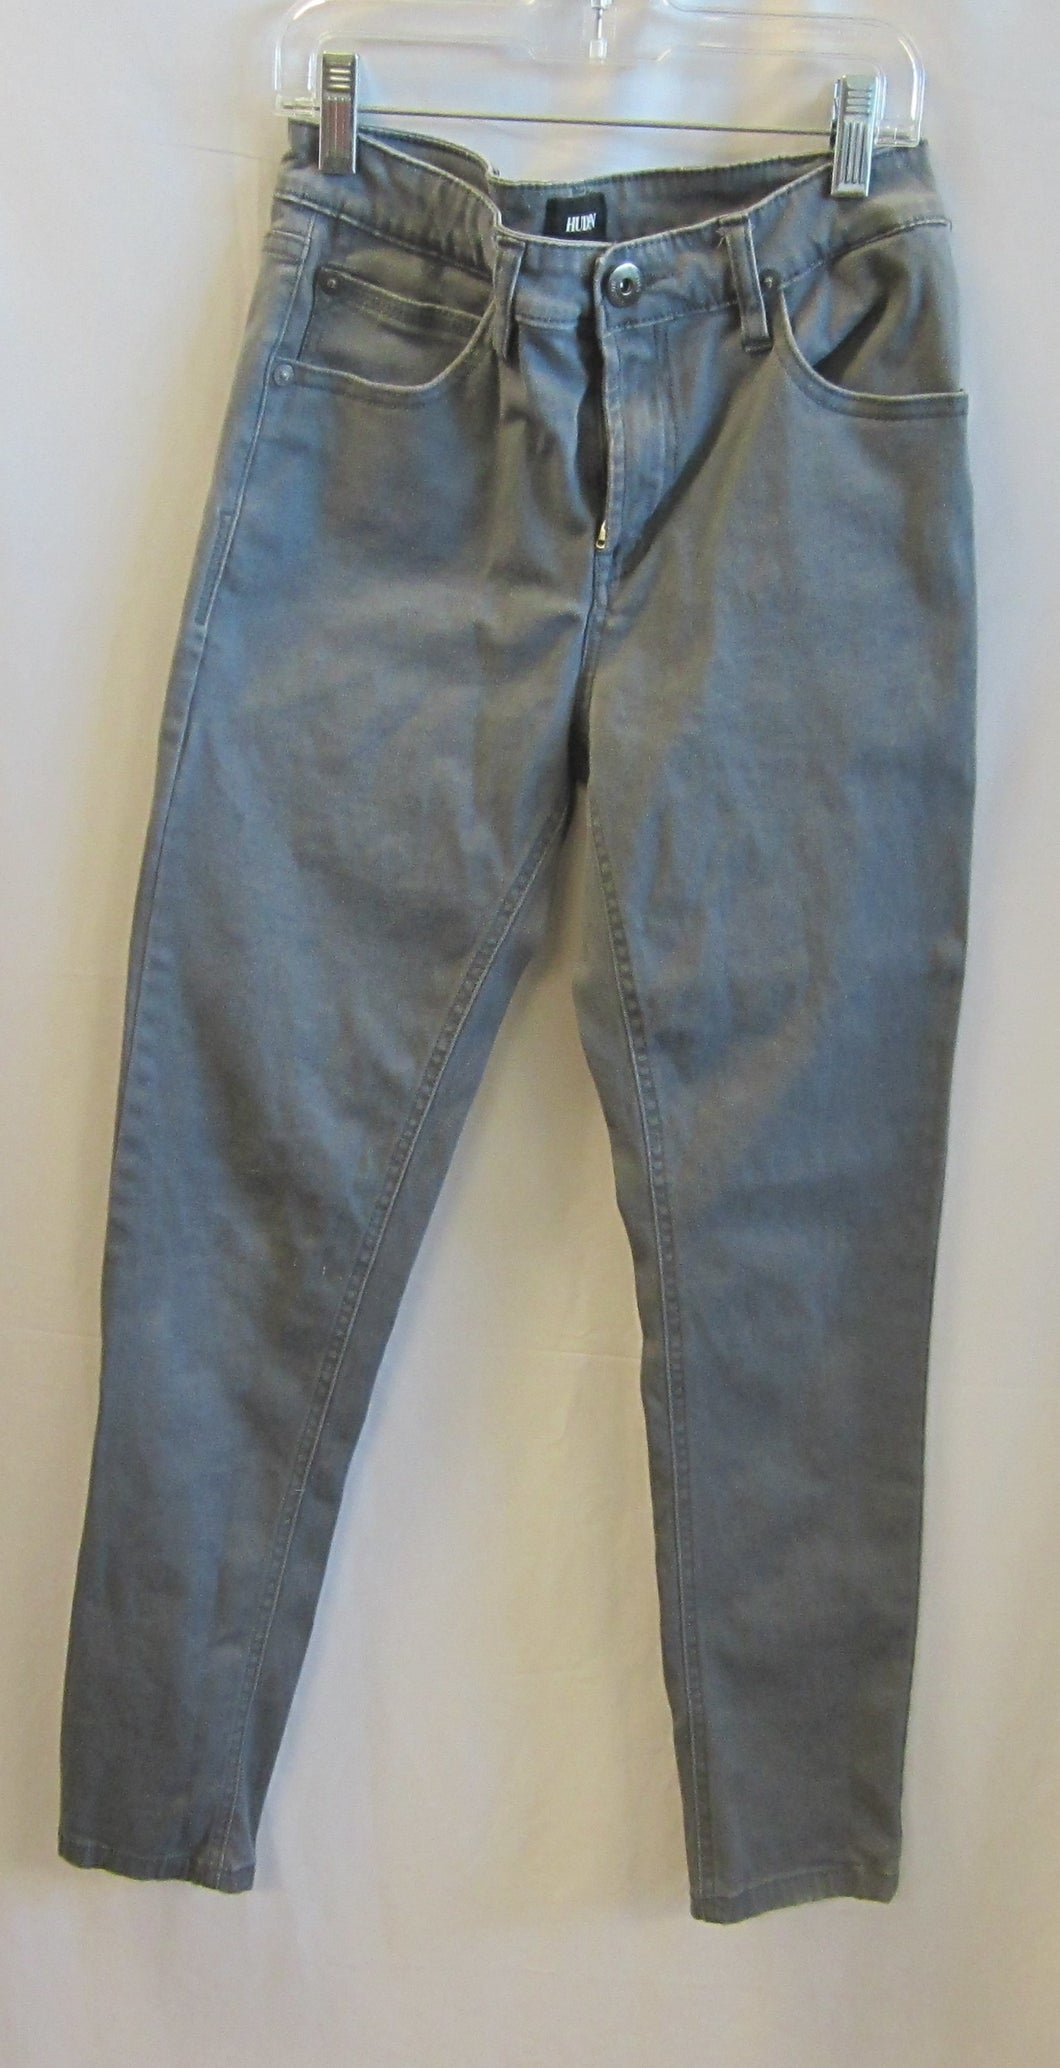 Kids Pants                12               Gray                                                           12/16/B